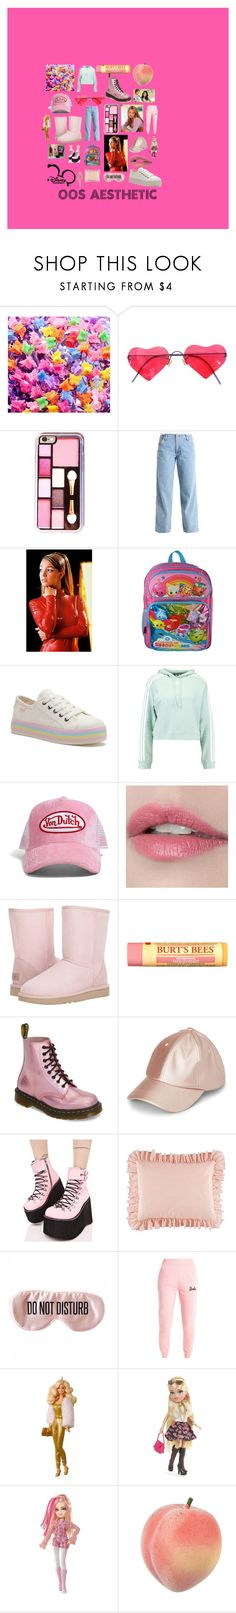 """""""Early oughts"""" by amber-mc-sweeney ❤ liked on Polyvore featuring Topshop, Shopkins, adidas Originals, Forever 21, UGG, Burt's Bees, Dr. Martens, Y.R.U., BaubleBar and Disney"""